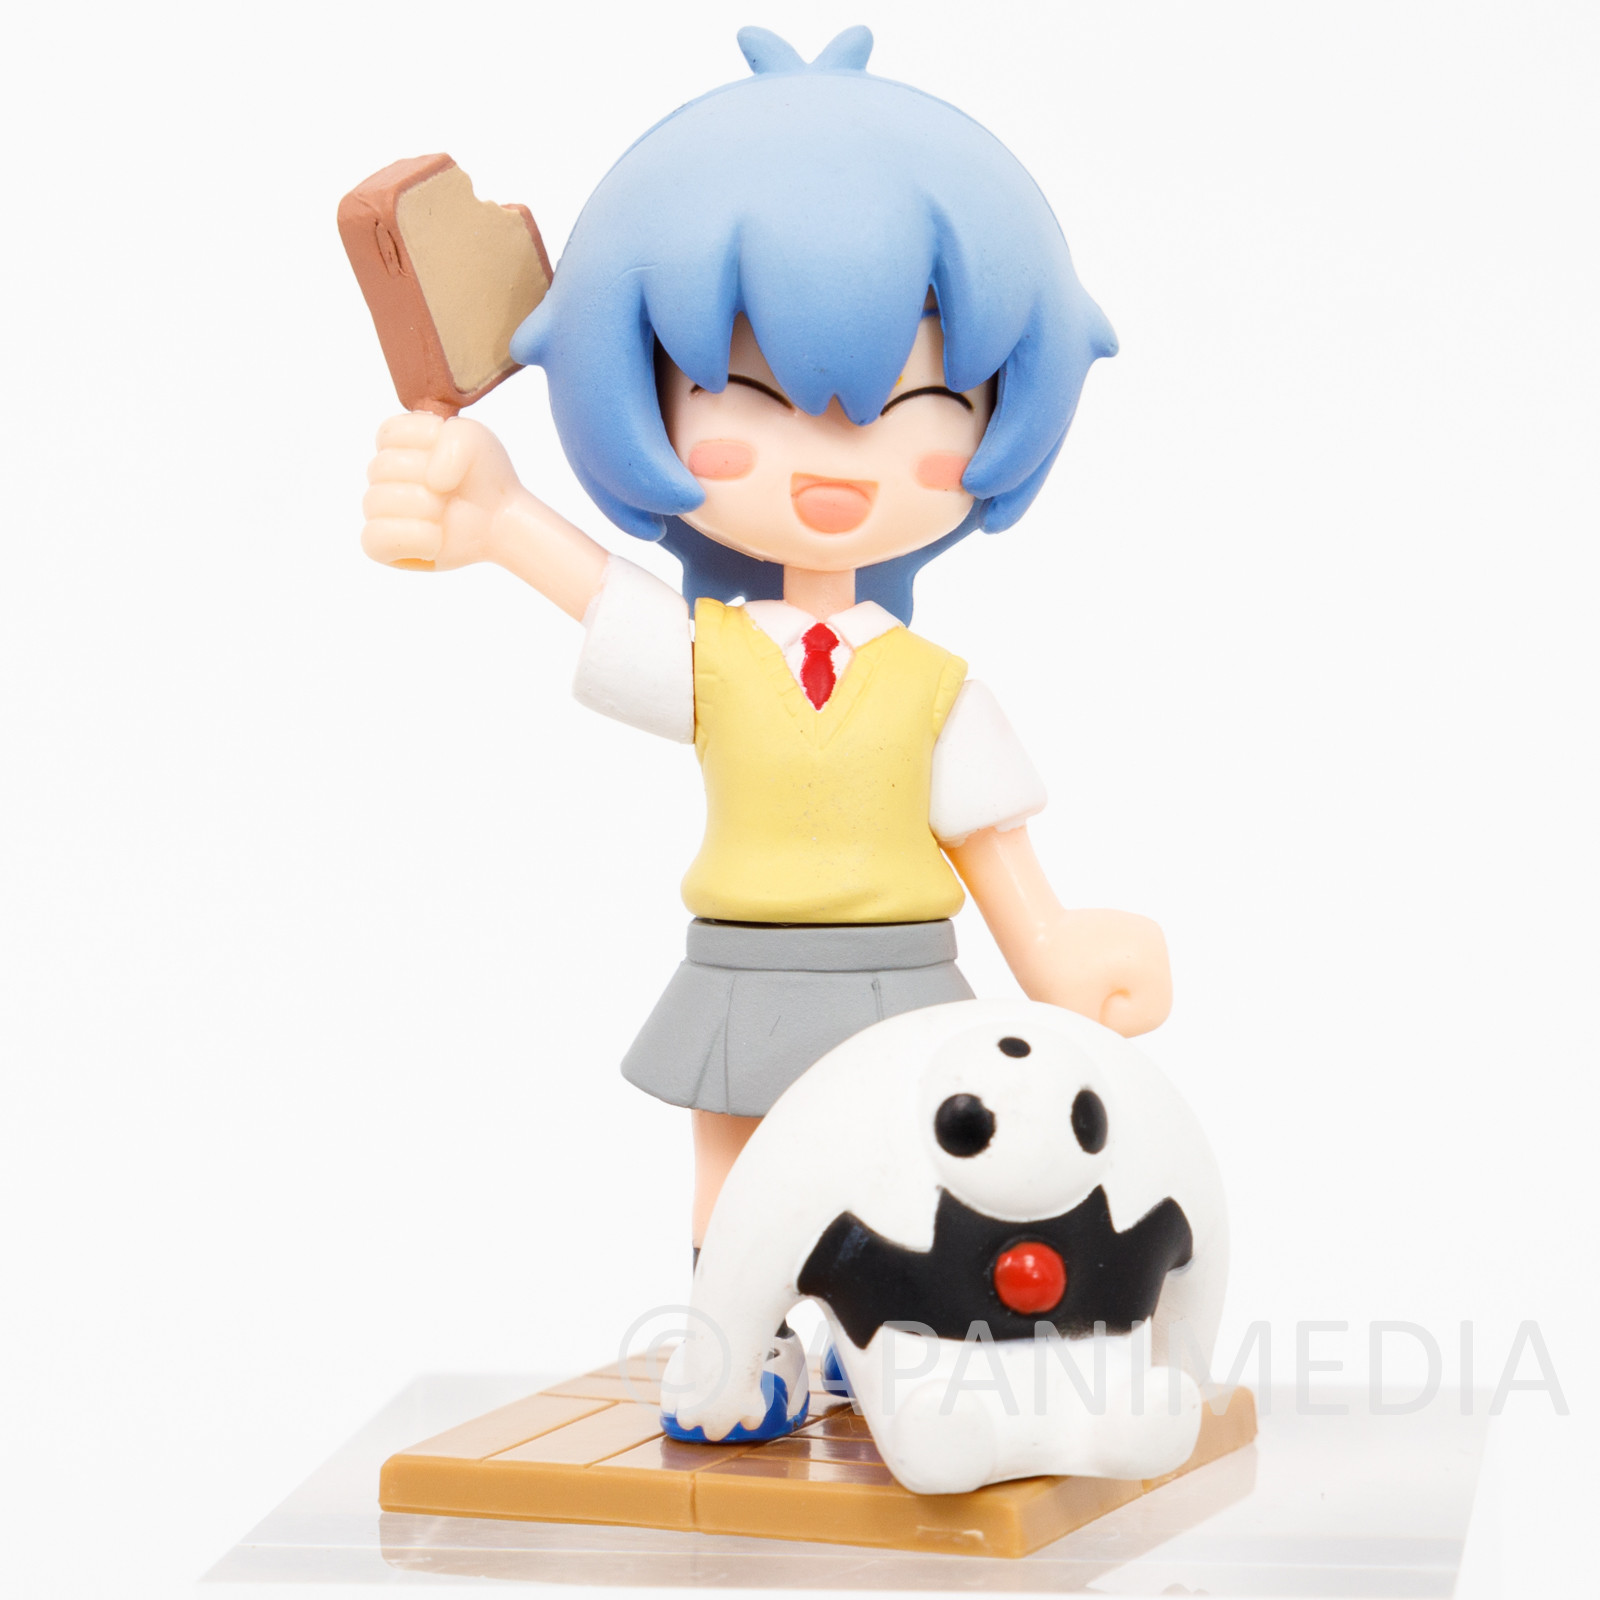 Evangelion Rei Ayanami Smile Figure Petit Eva Series JAPAN ANIME